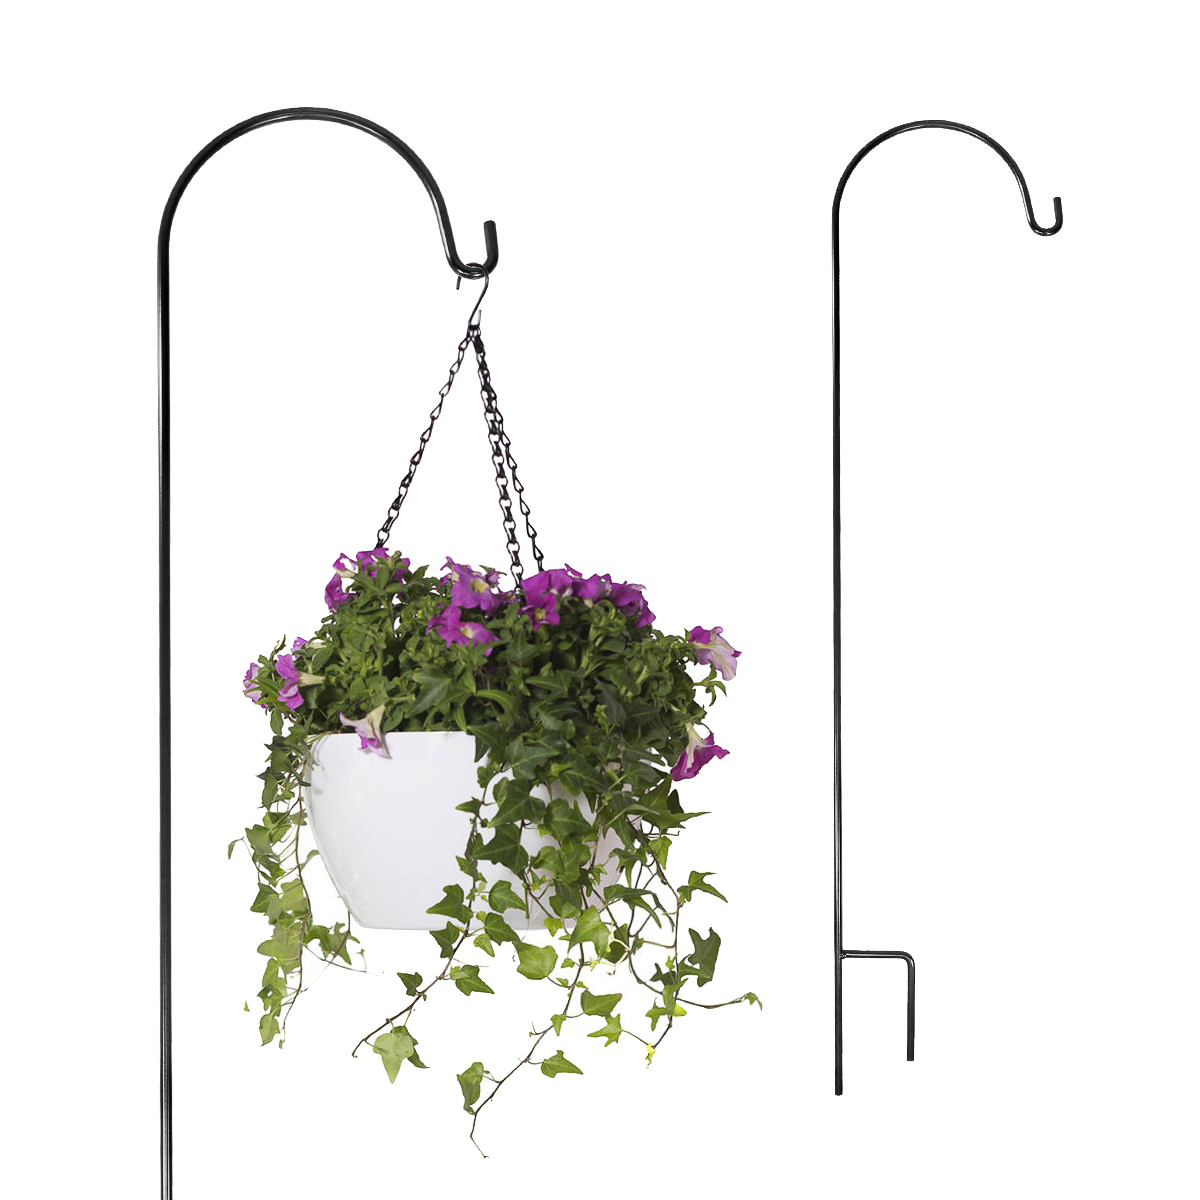 2 Brinkman Wrought Iron Shephards Hooks Hangers For Gardens Plants Yards Chimes Lawns Feeders Shepherds